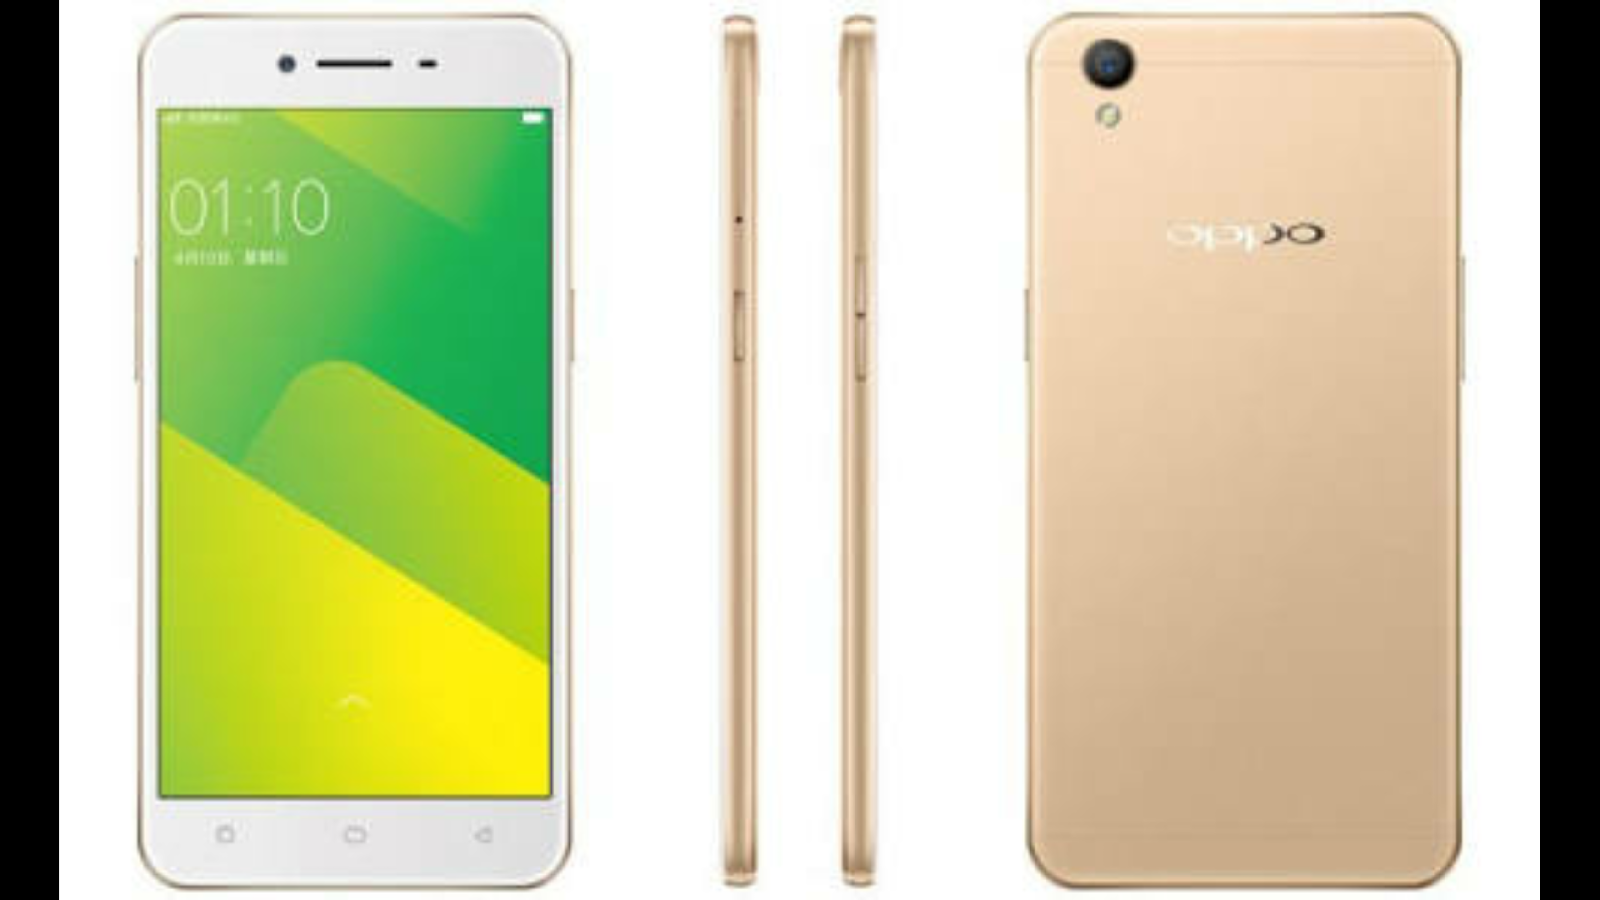 Hd wallpaper oppo a37 - Good News Arrives For Indian Customersoppo Has Come Up With Its New Smartphone Oppo A37 Which Was Recently Launched In China And Now The Company Has